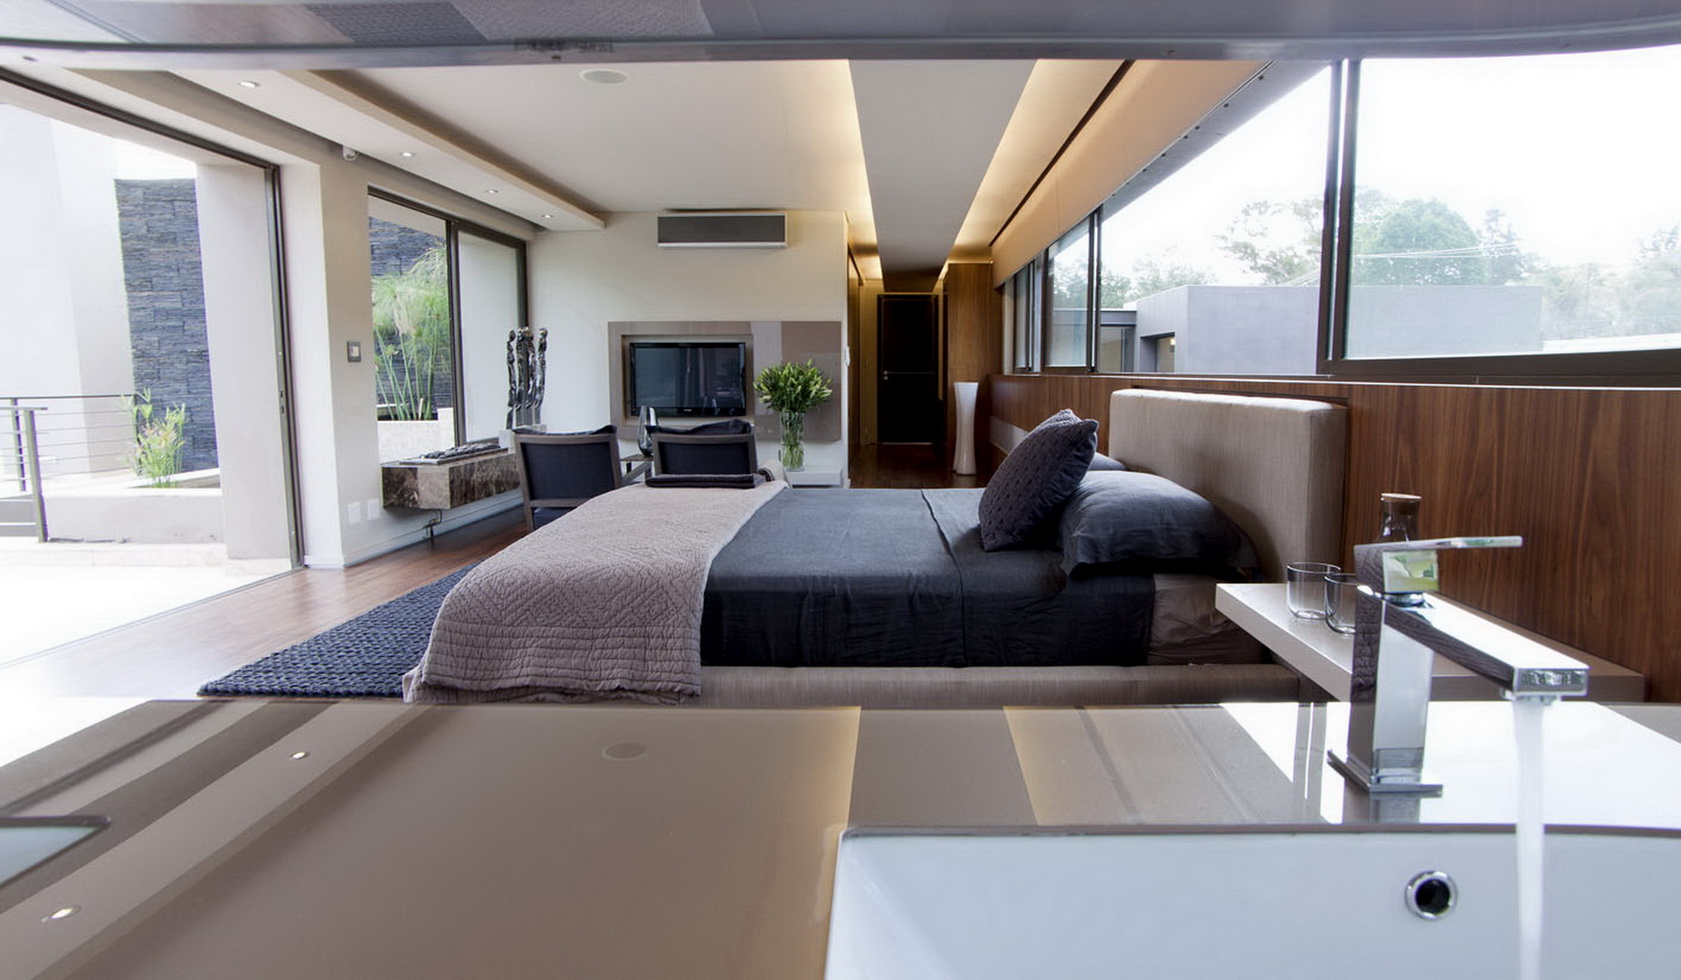 decor house 2 pretty design decor house lam nico van der meulen decor house House Sed by Nico van der Meulen Architects